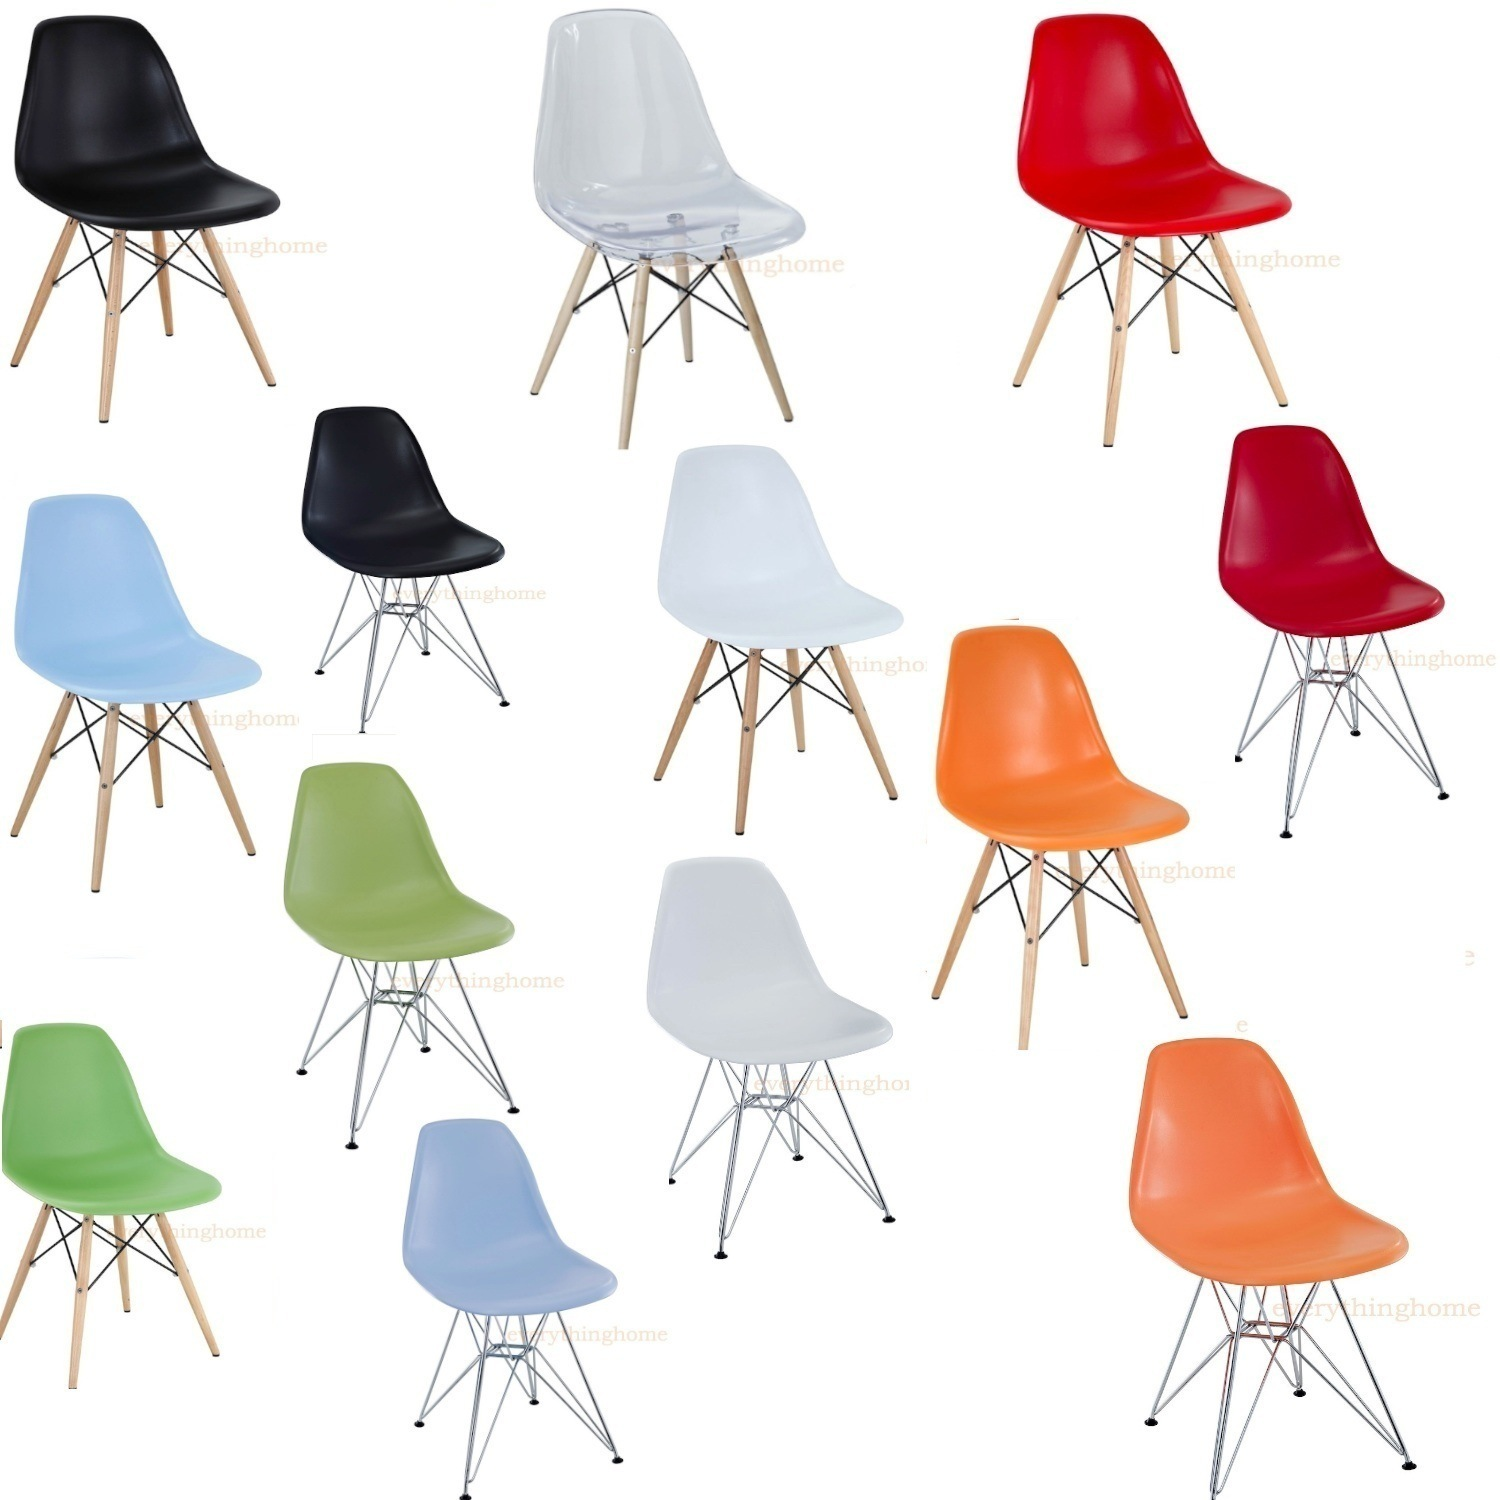 eames style plastic chair best outdoor lounge chairs 2018 eiffel shell wood dowel or wire leg base side dining details about 7 colors